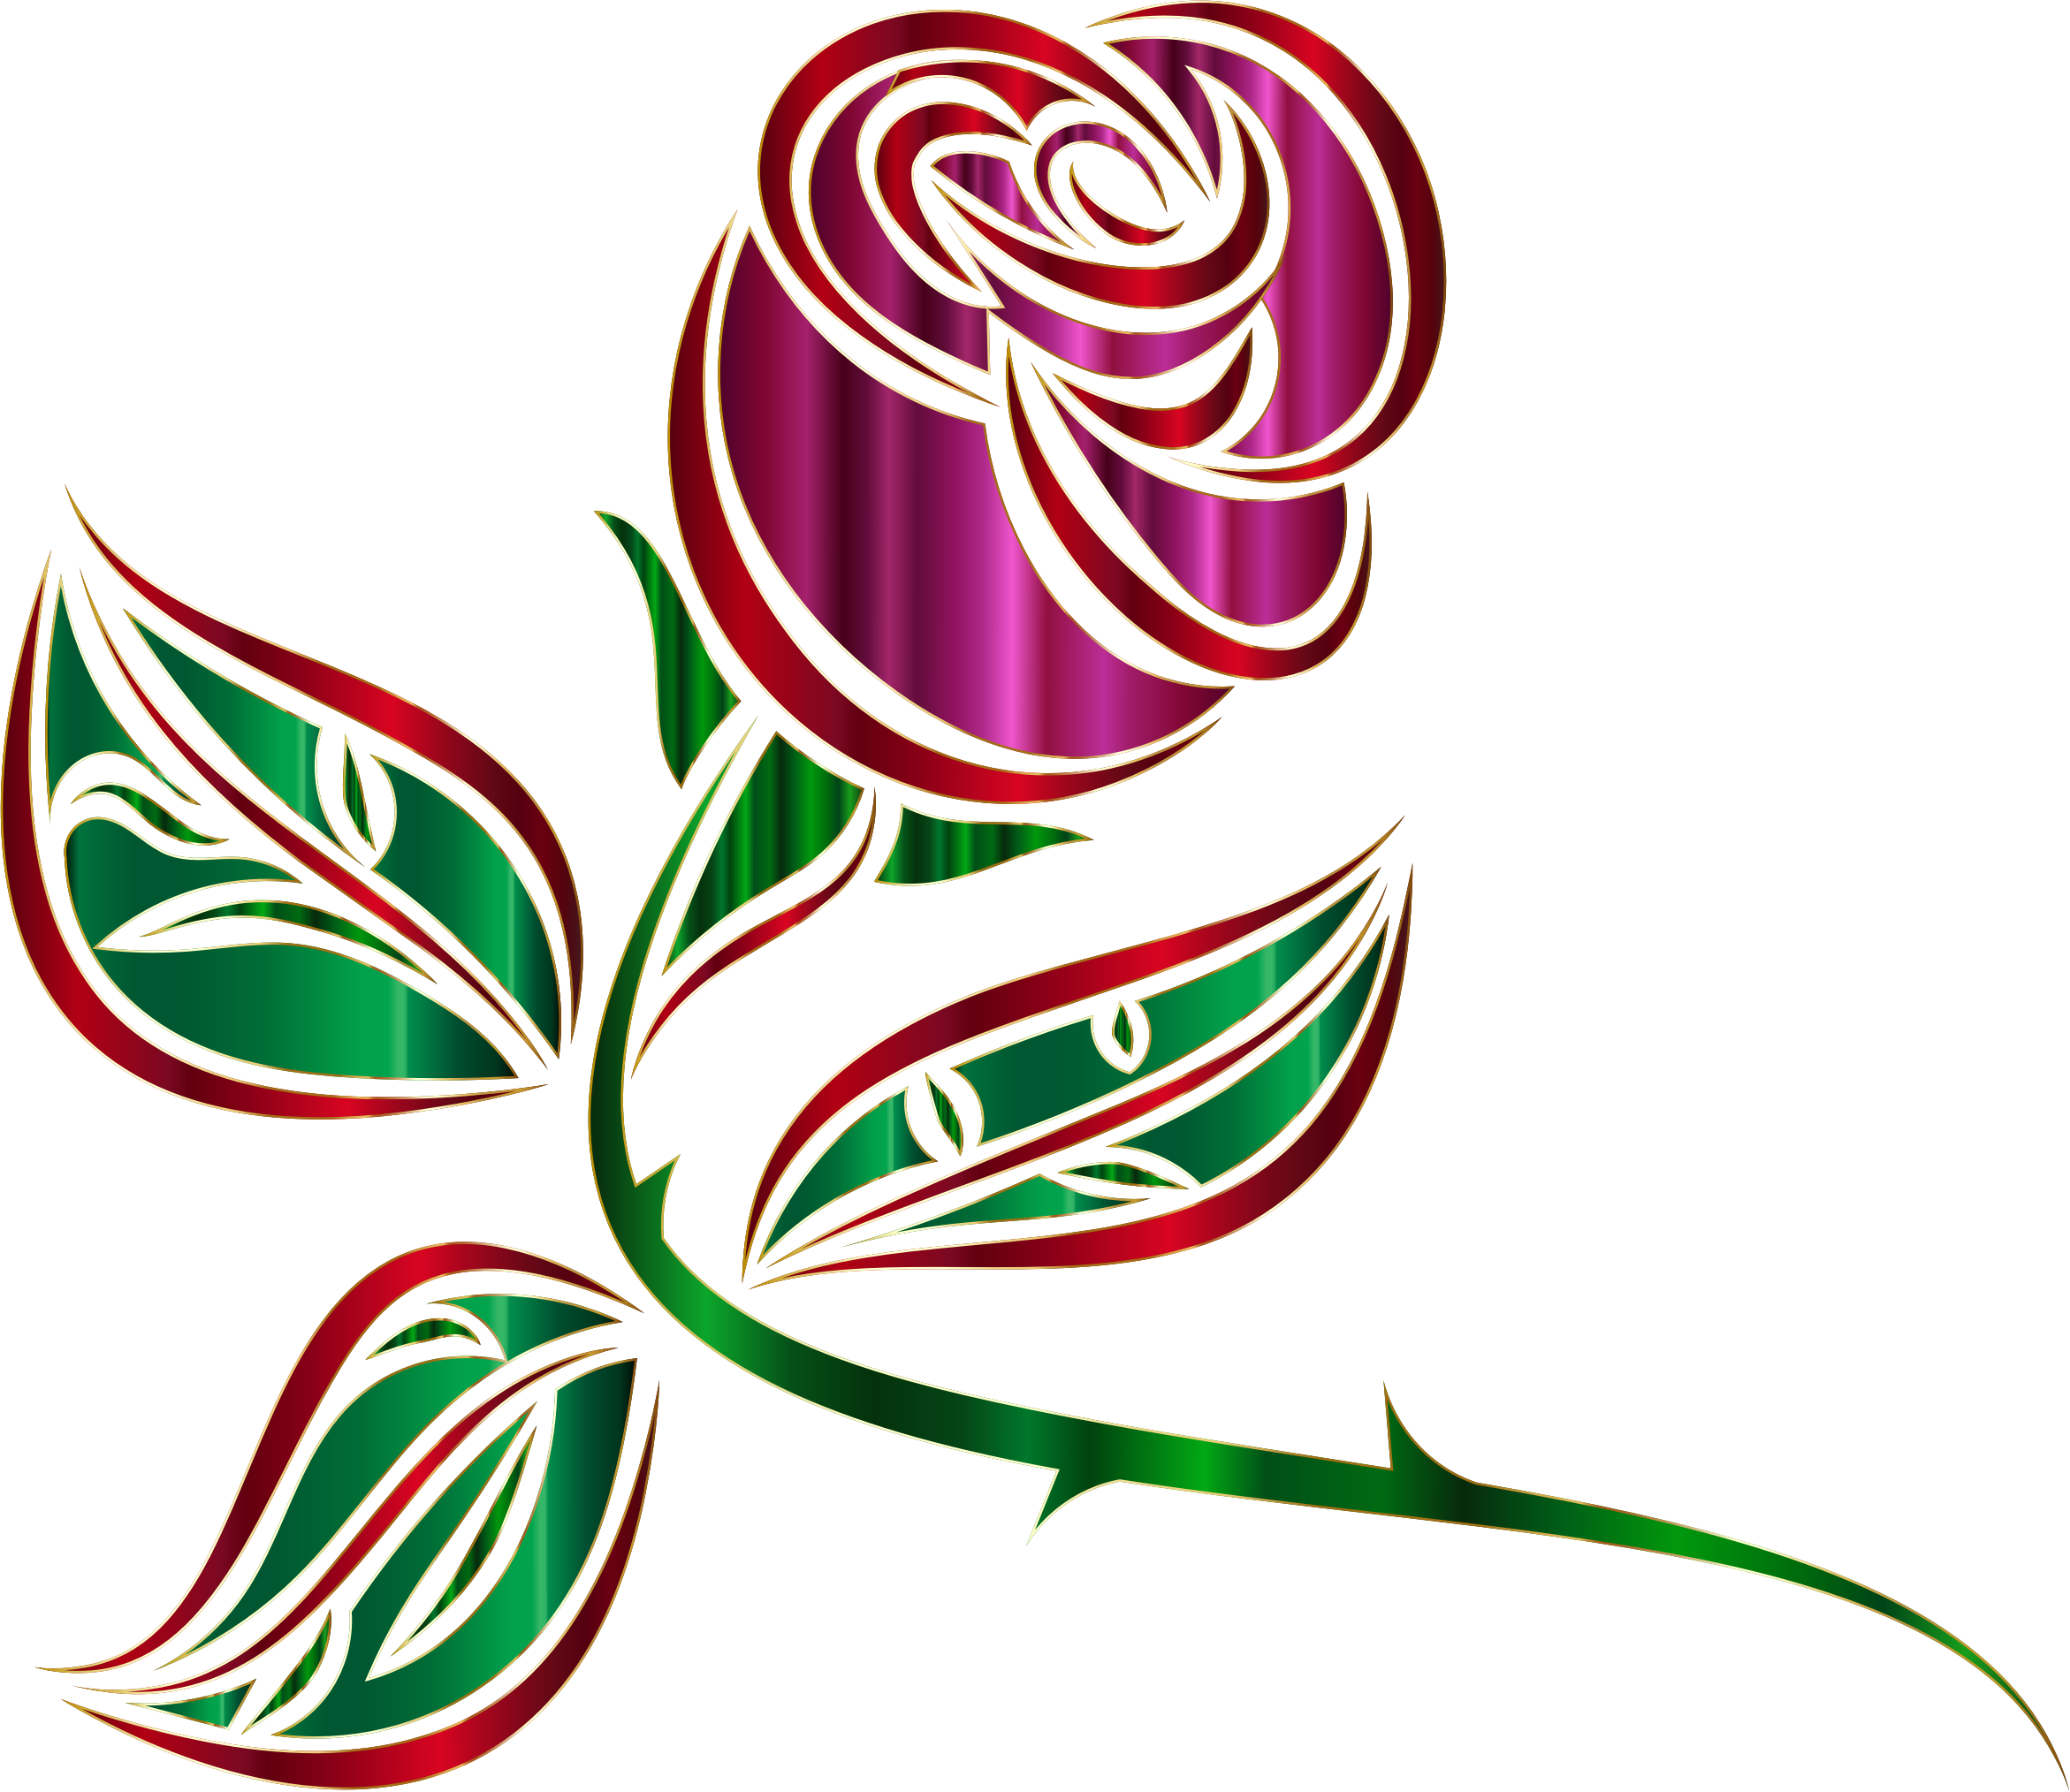 Extended clipart contest. Stylized rose minus background